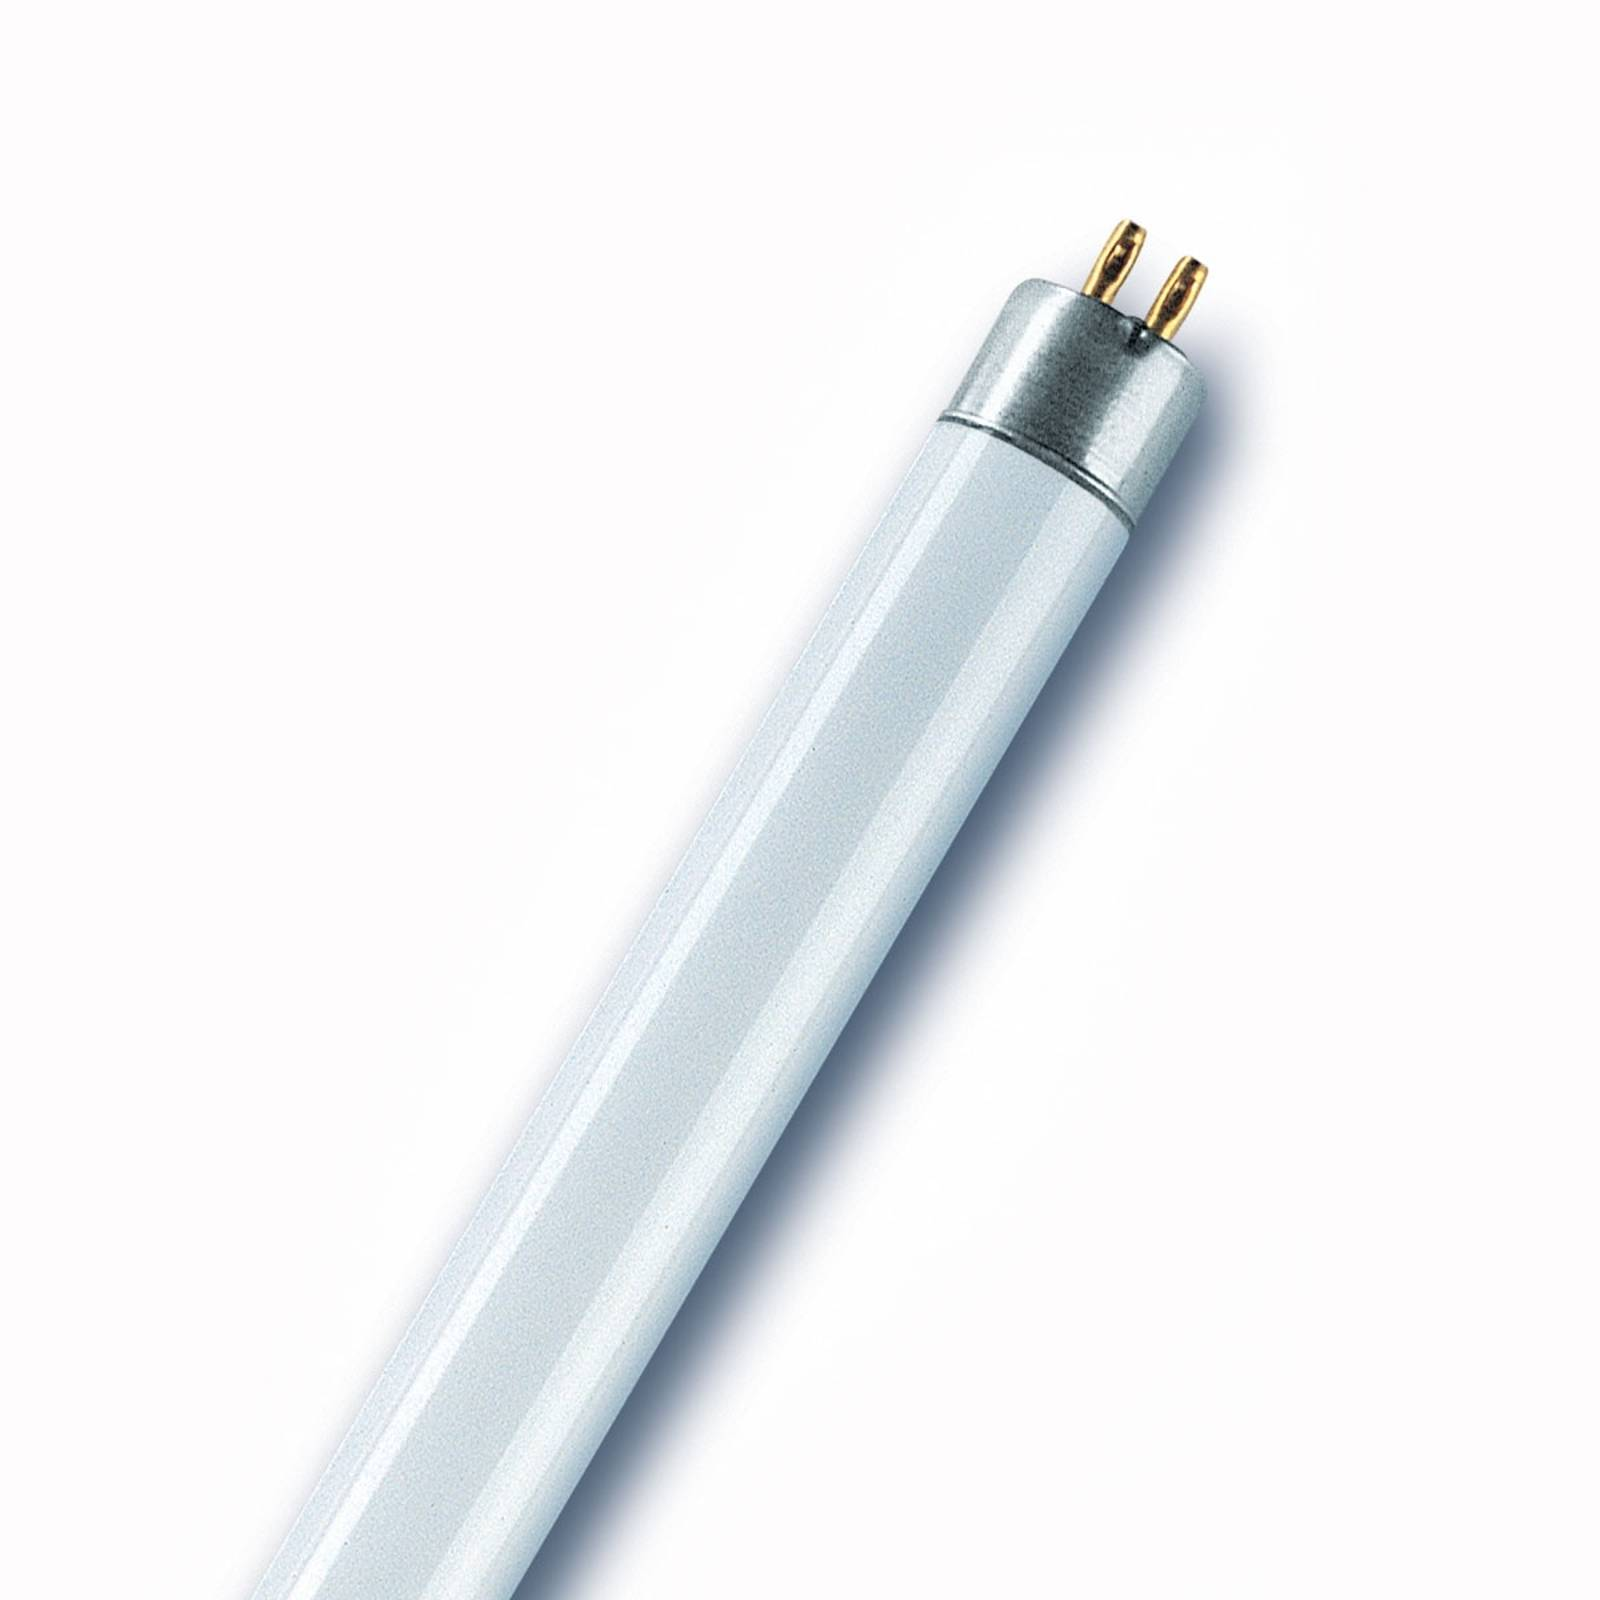 G5 T5 54W 865 fluorescent bulb Lumilux HO from Osram